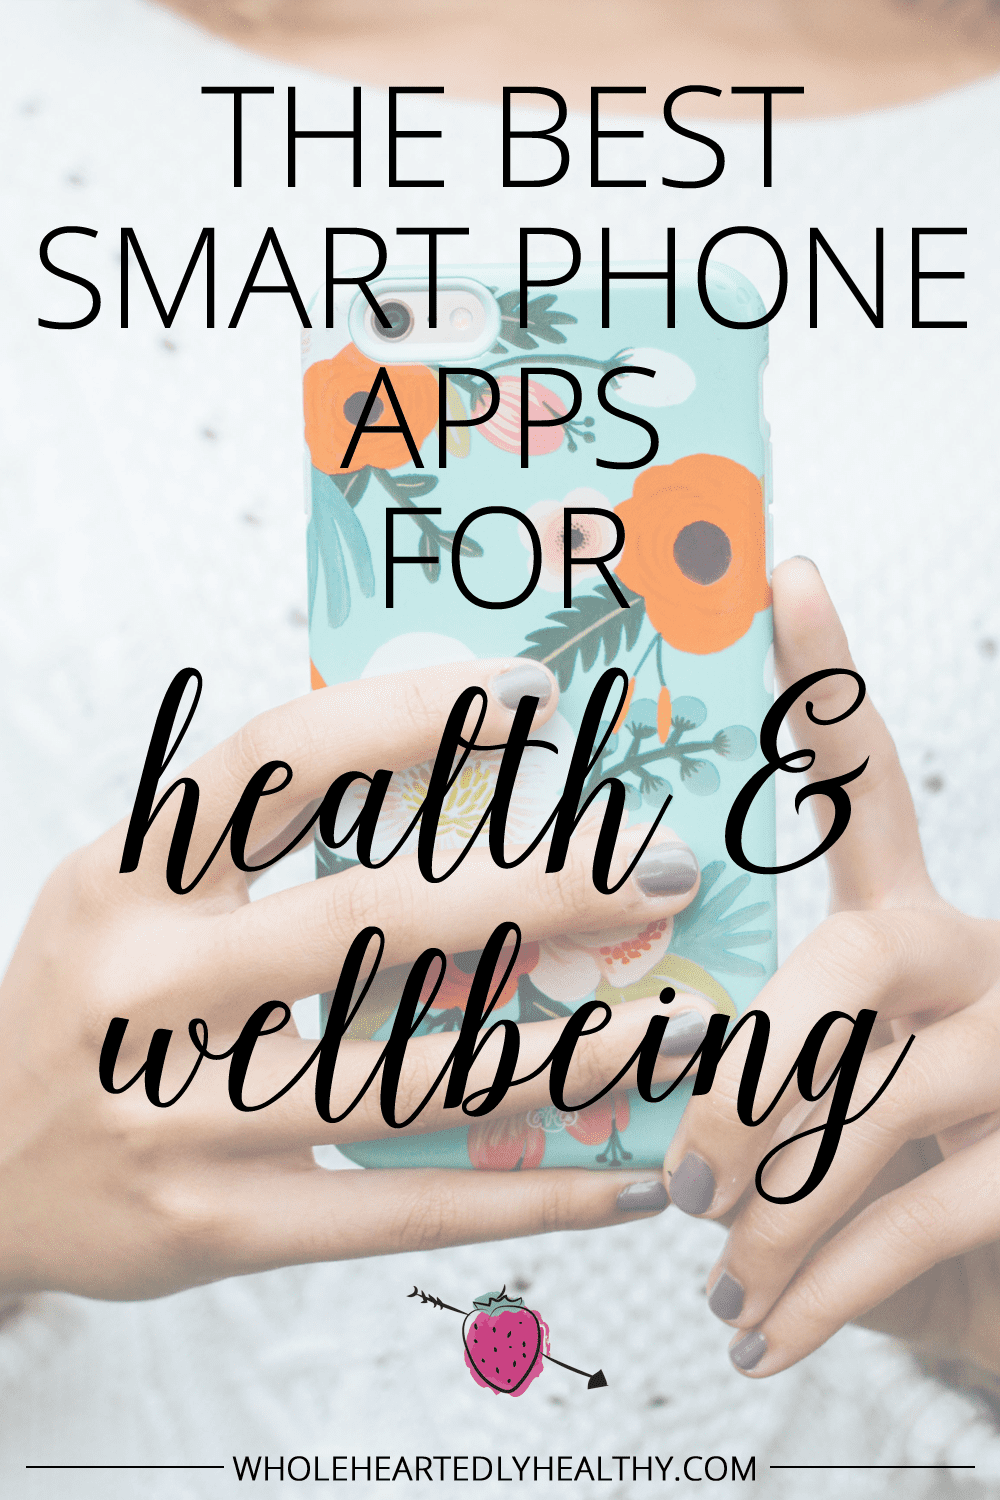 The best apps for health and wellbeing